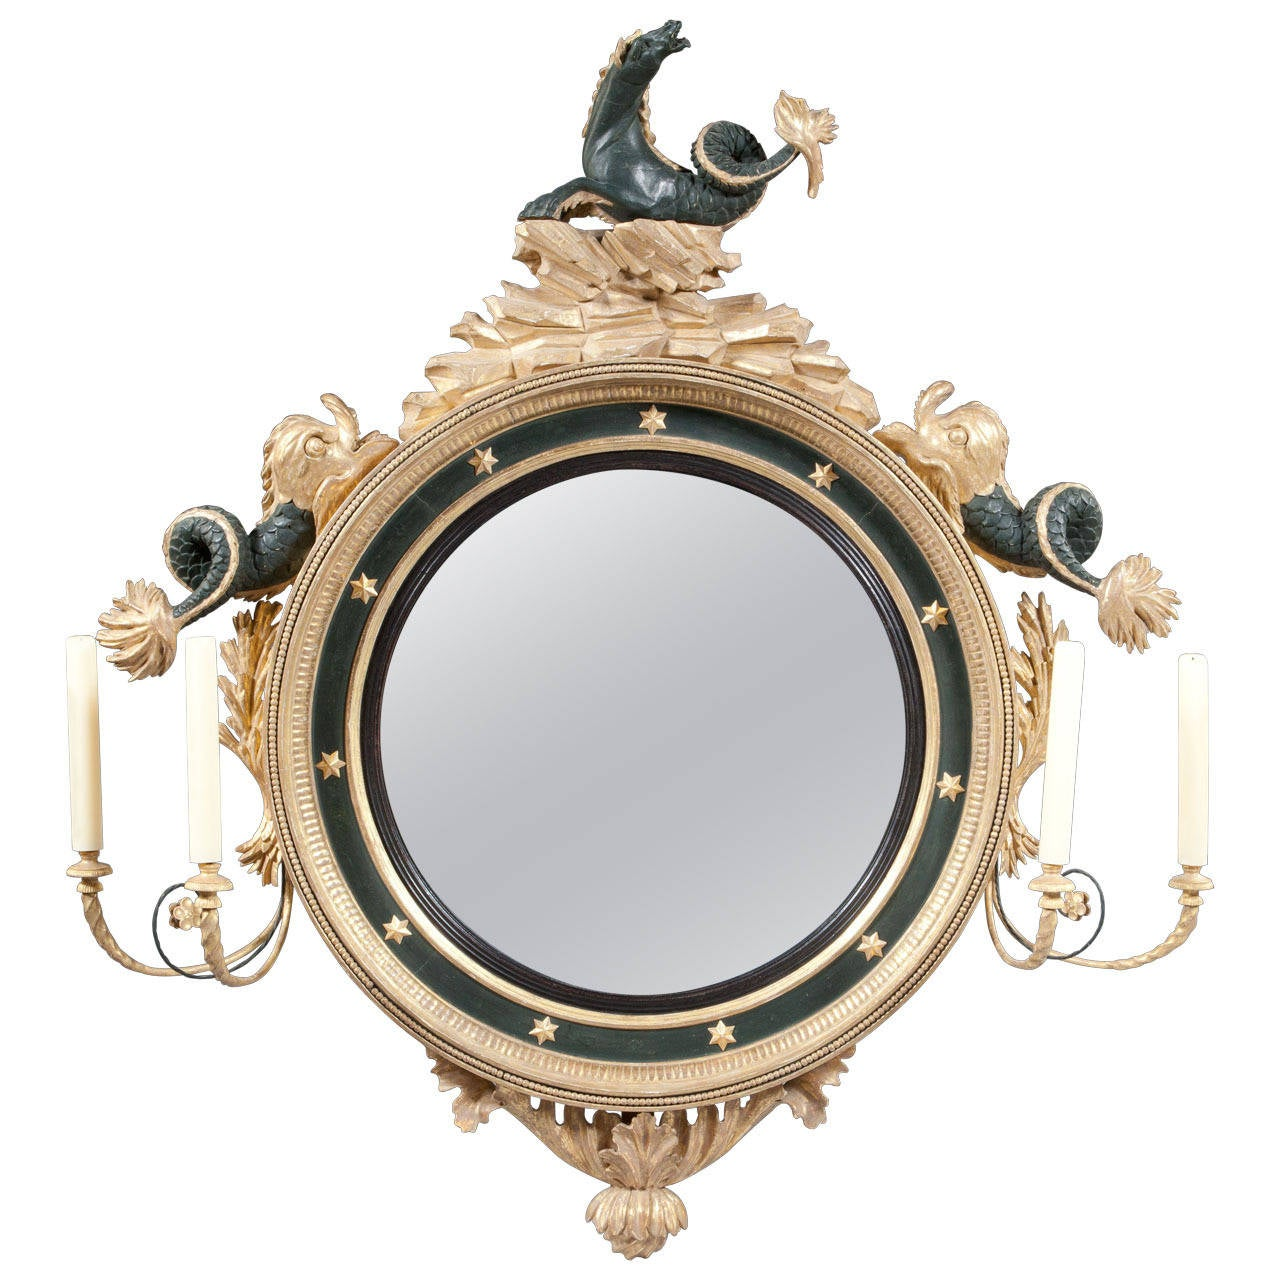 Fine regency convex mirror at 1stdibs for Convex mirror for home